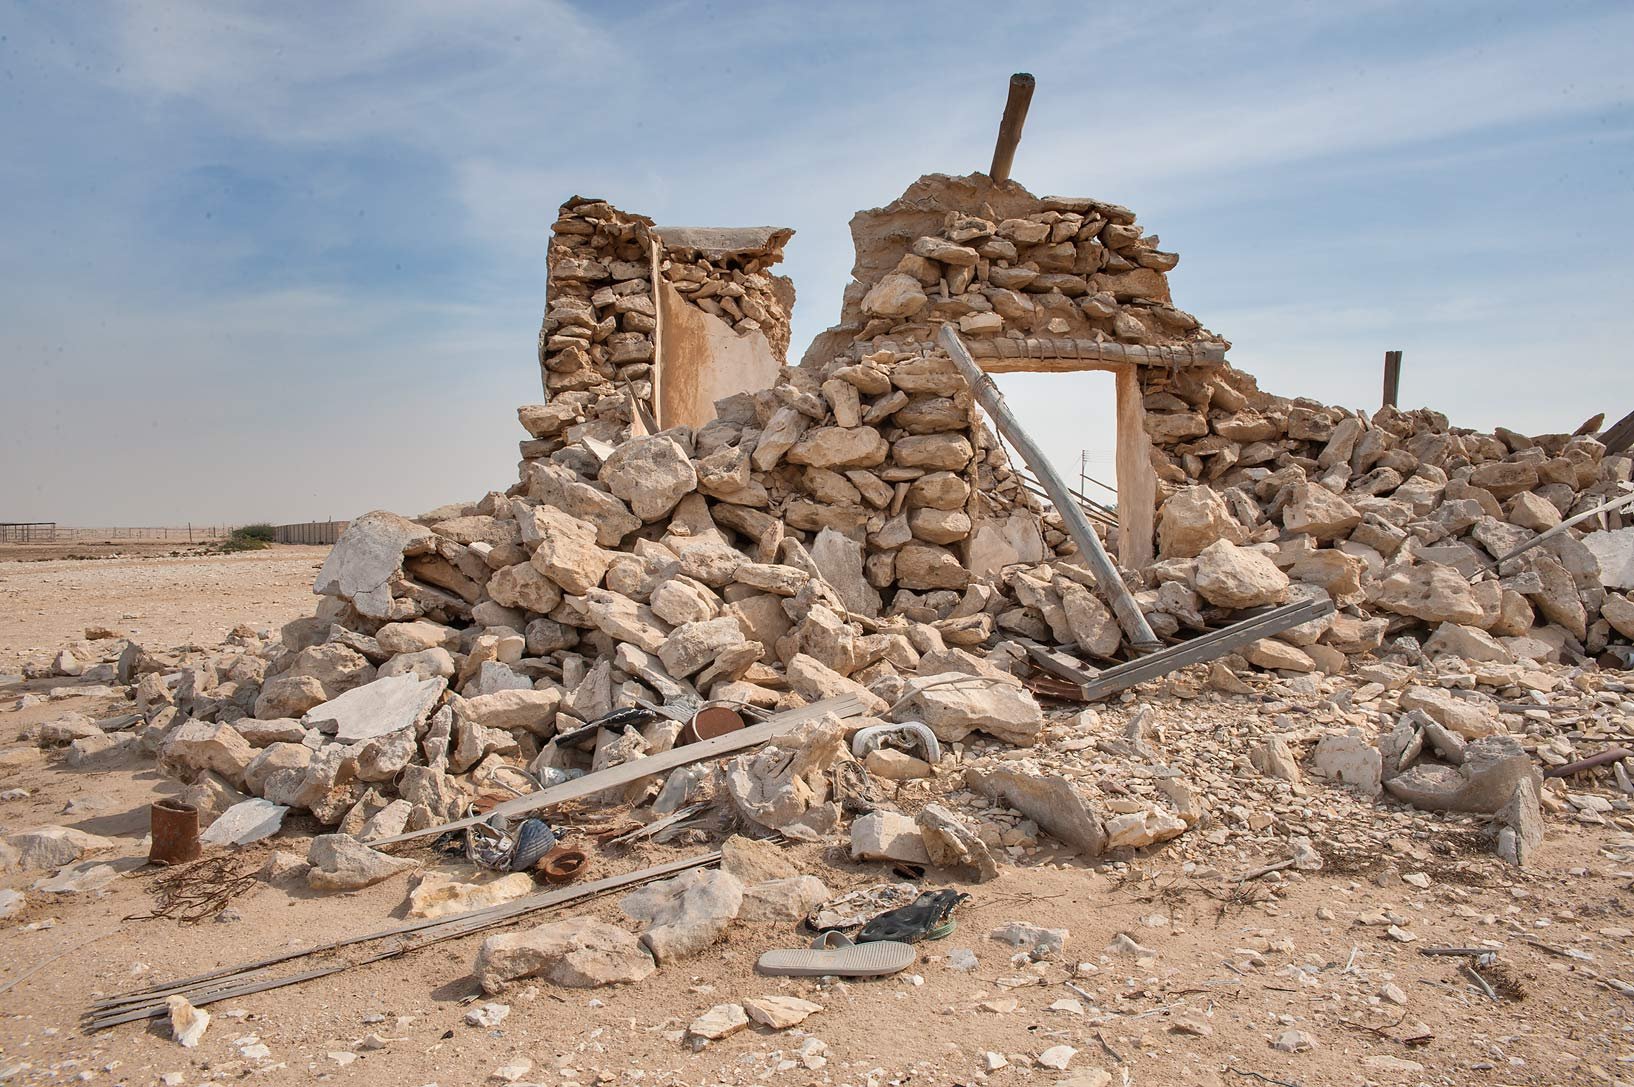 Stone ruins of Al Suwaihliya in north-western Qatar